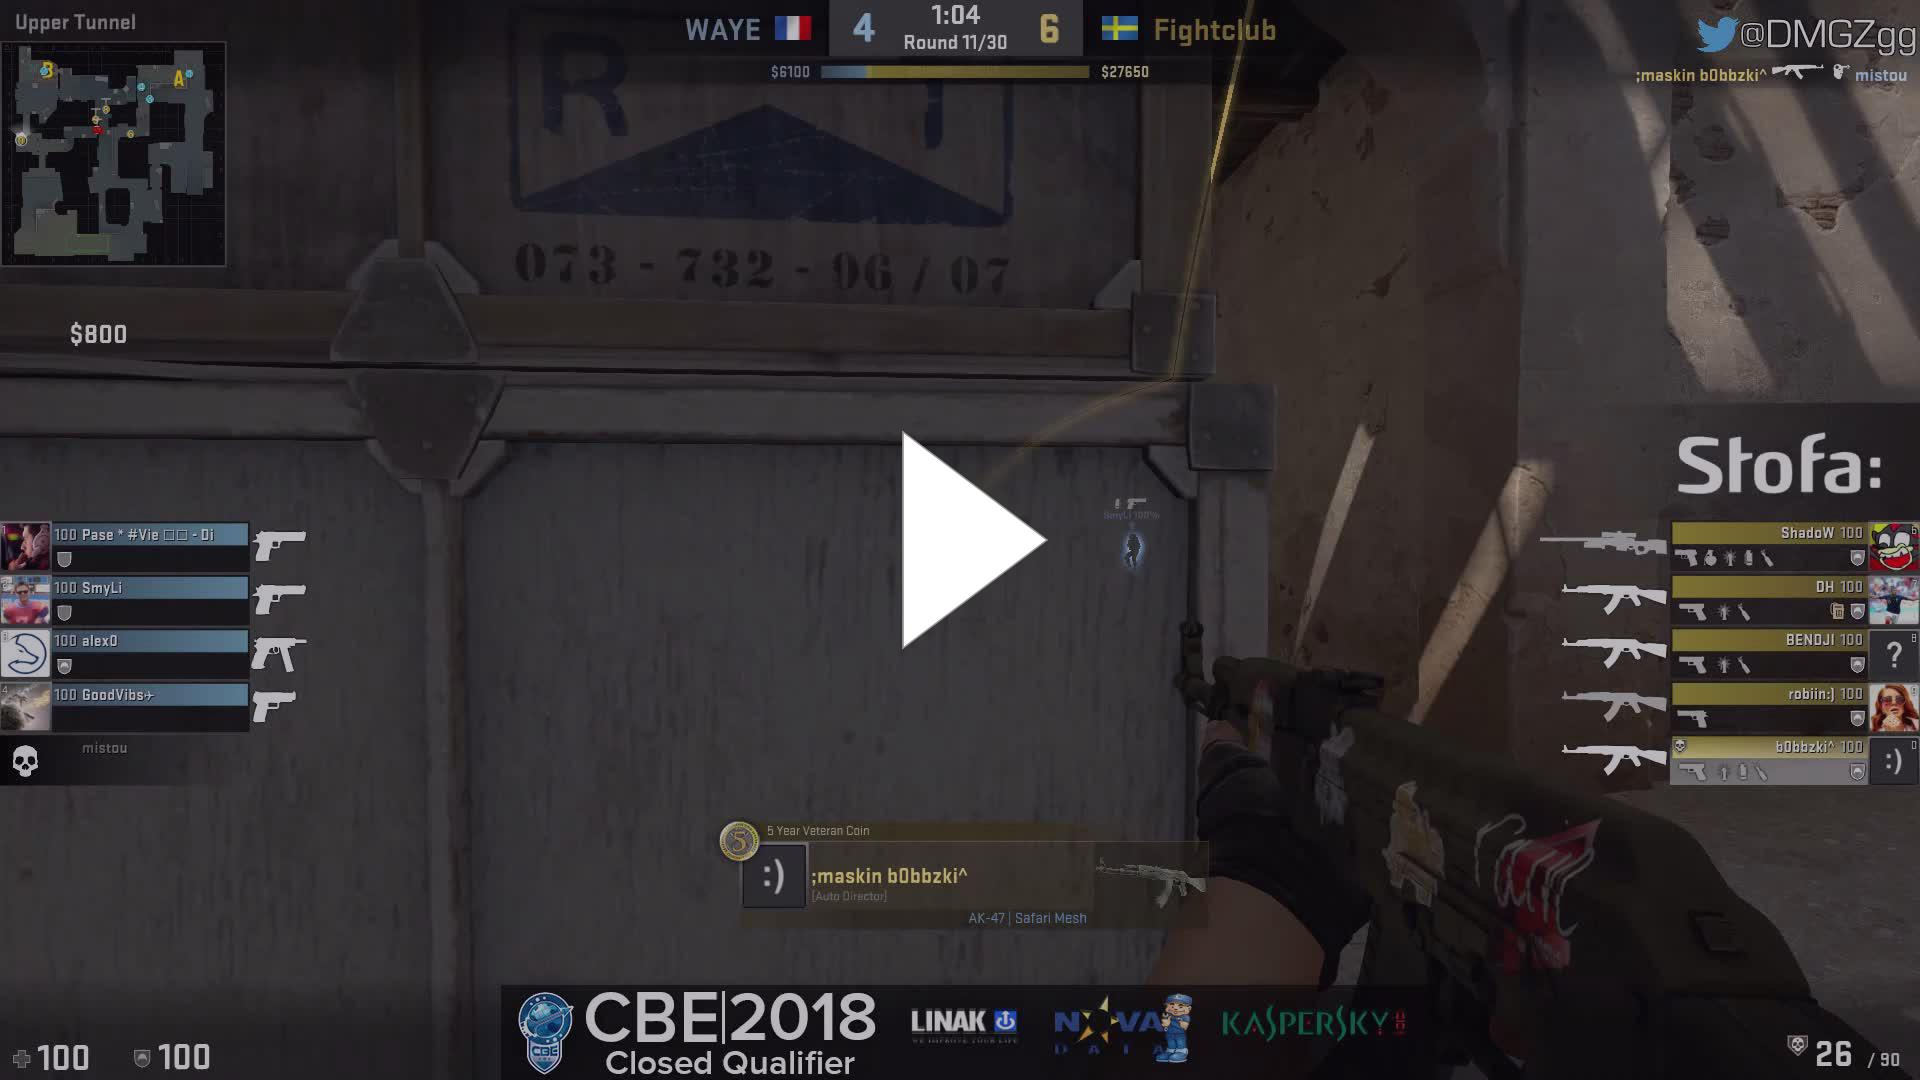 Arte Et Marte Cs Go Dmgztv Robiin 3 Ak Kills On The Bombsite B Offensive Vs